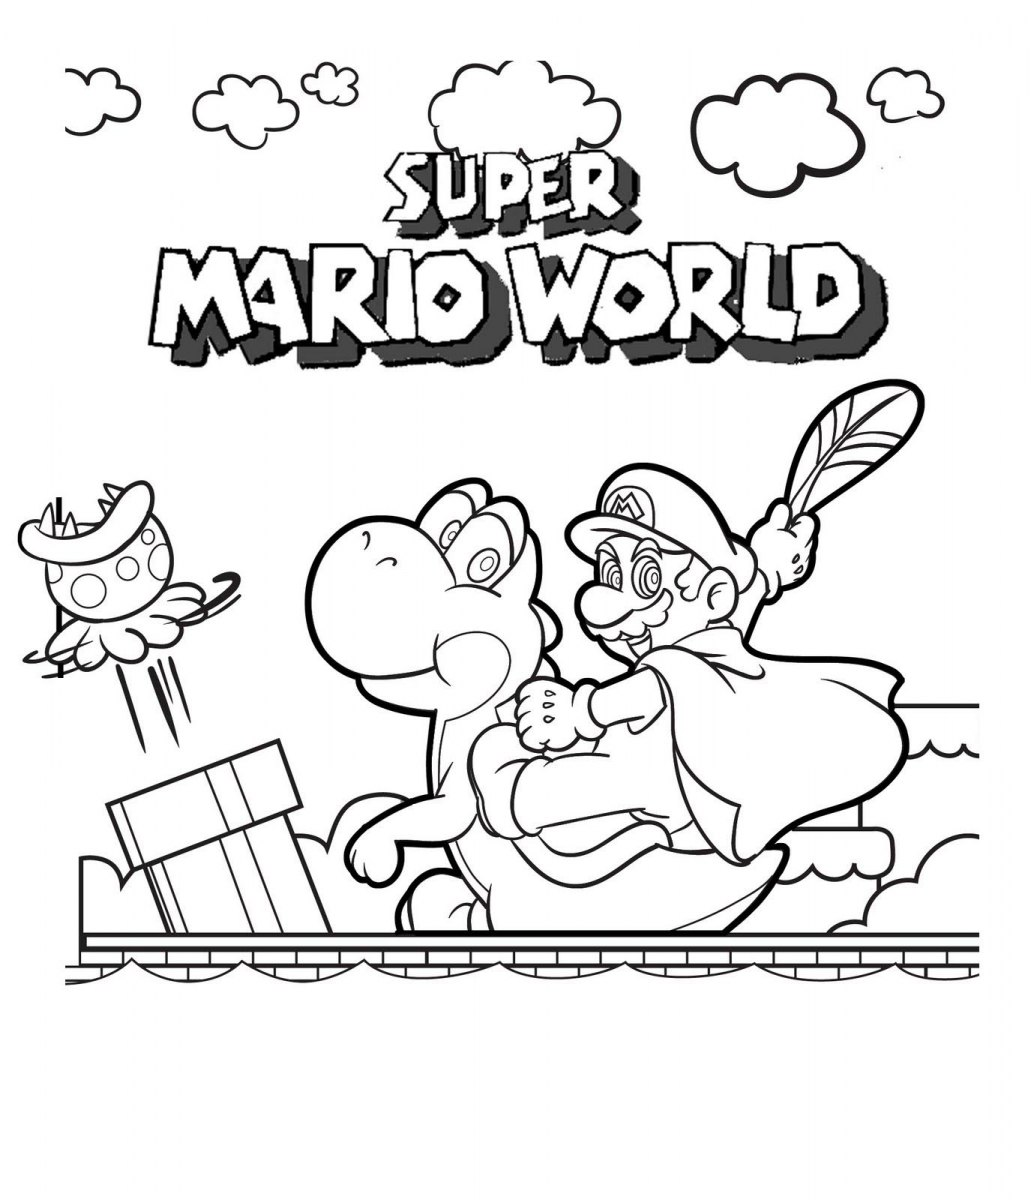 Super Mario World Hd Desenhoswiki Com